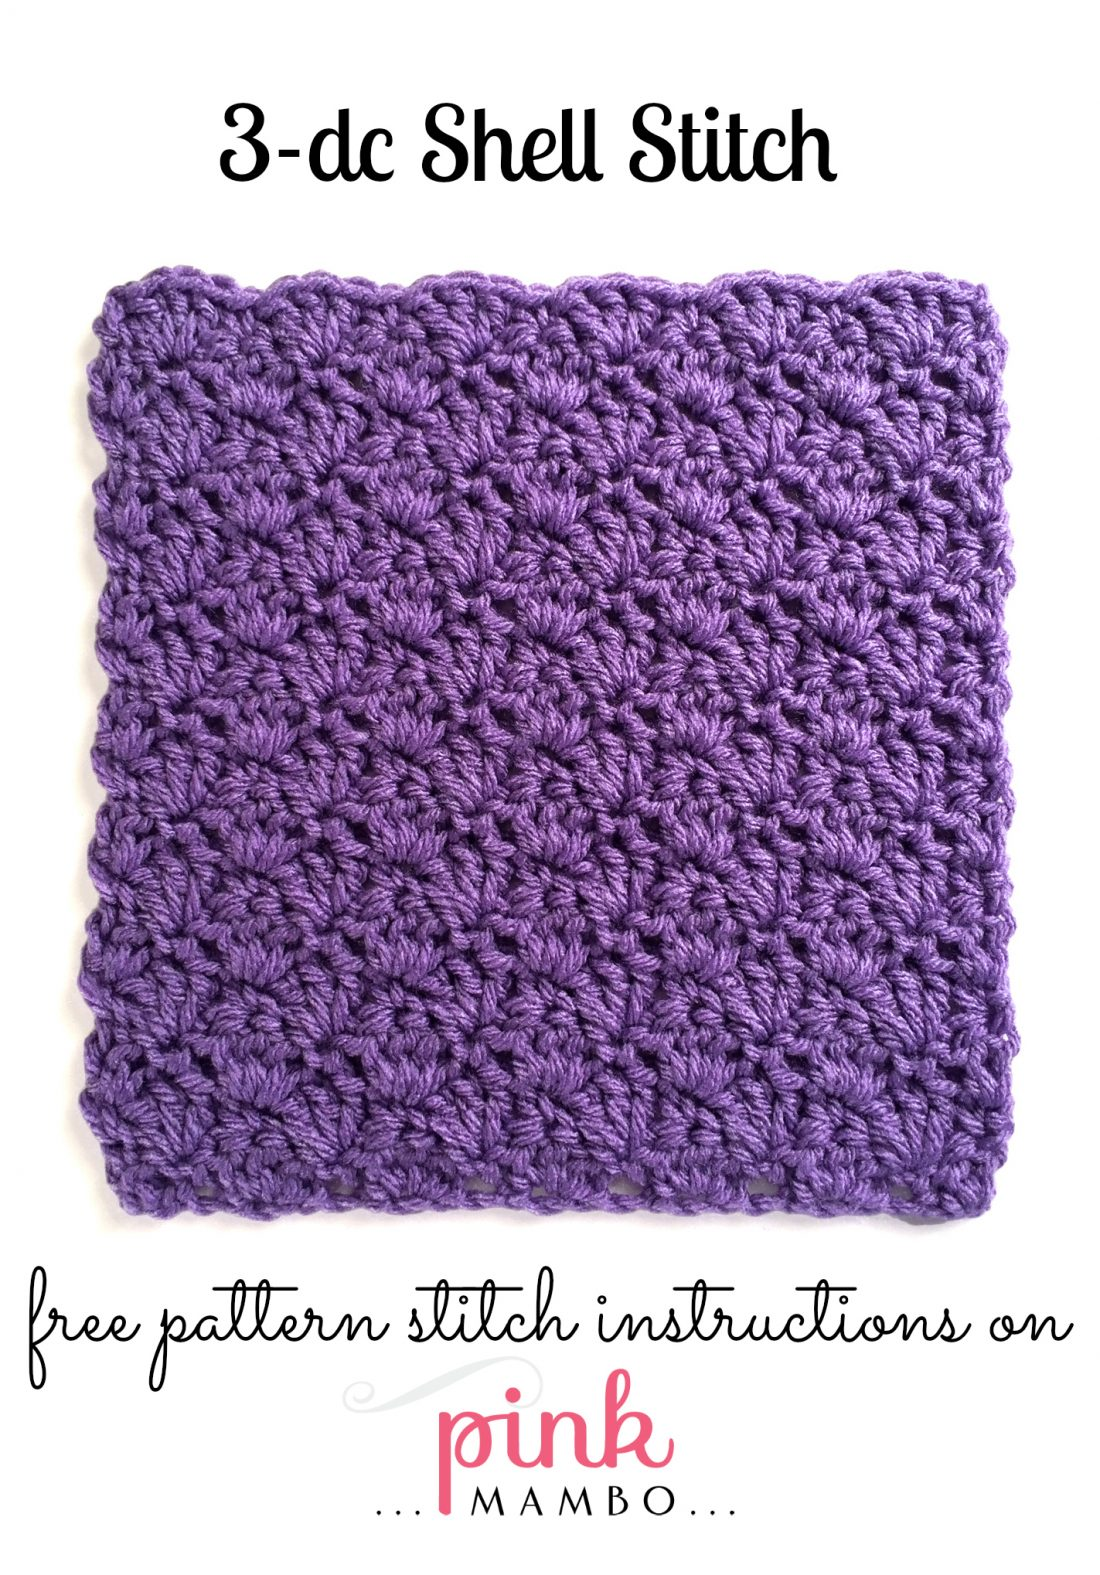 Crochet Stitches With Pattern : Double Crochet Shell Stitch Pattern